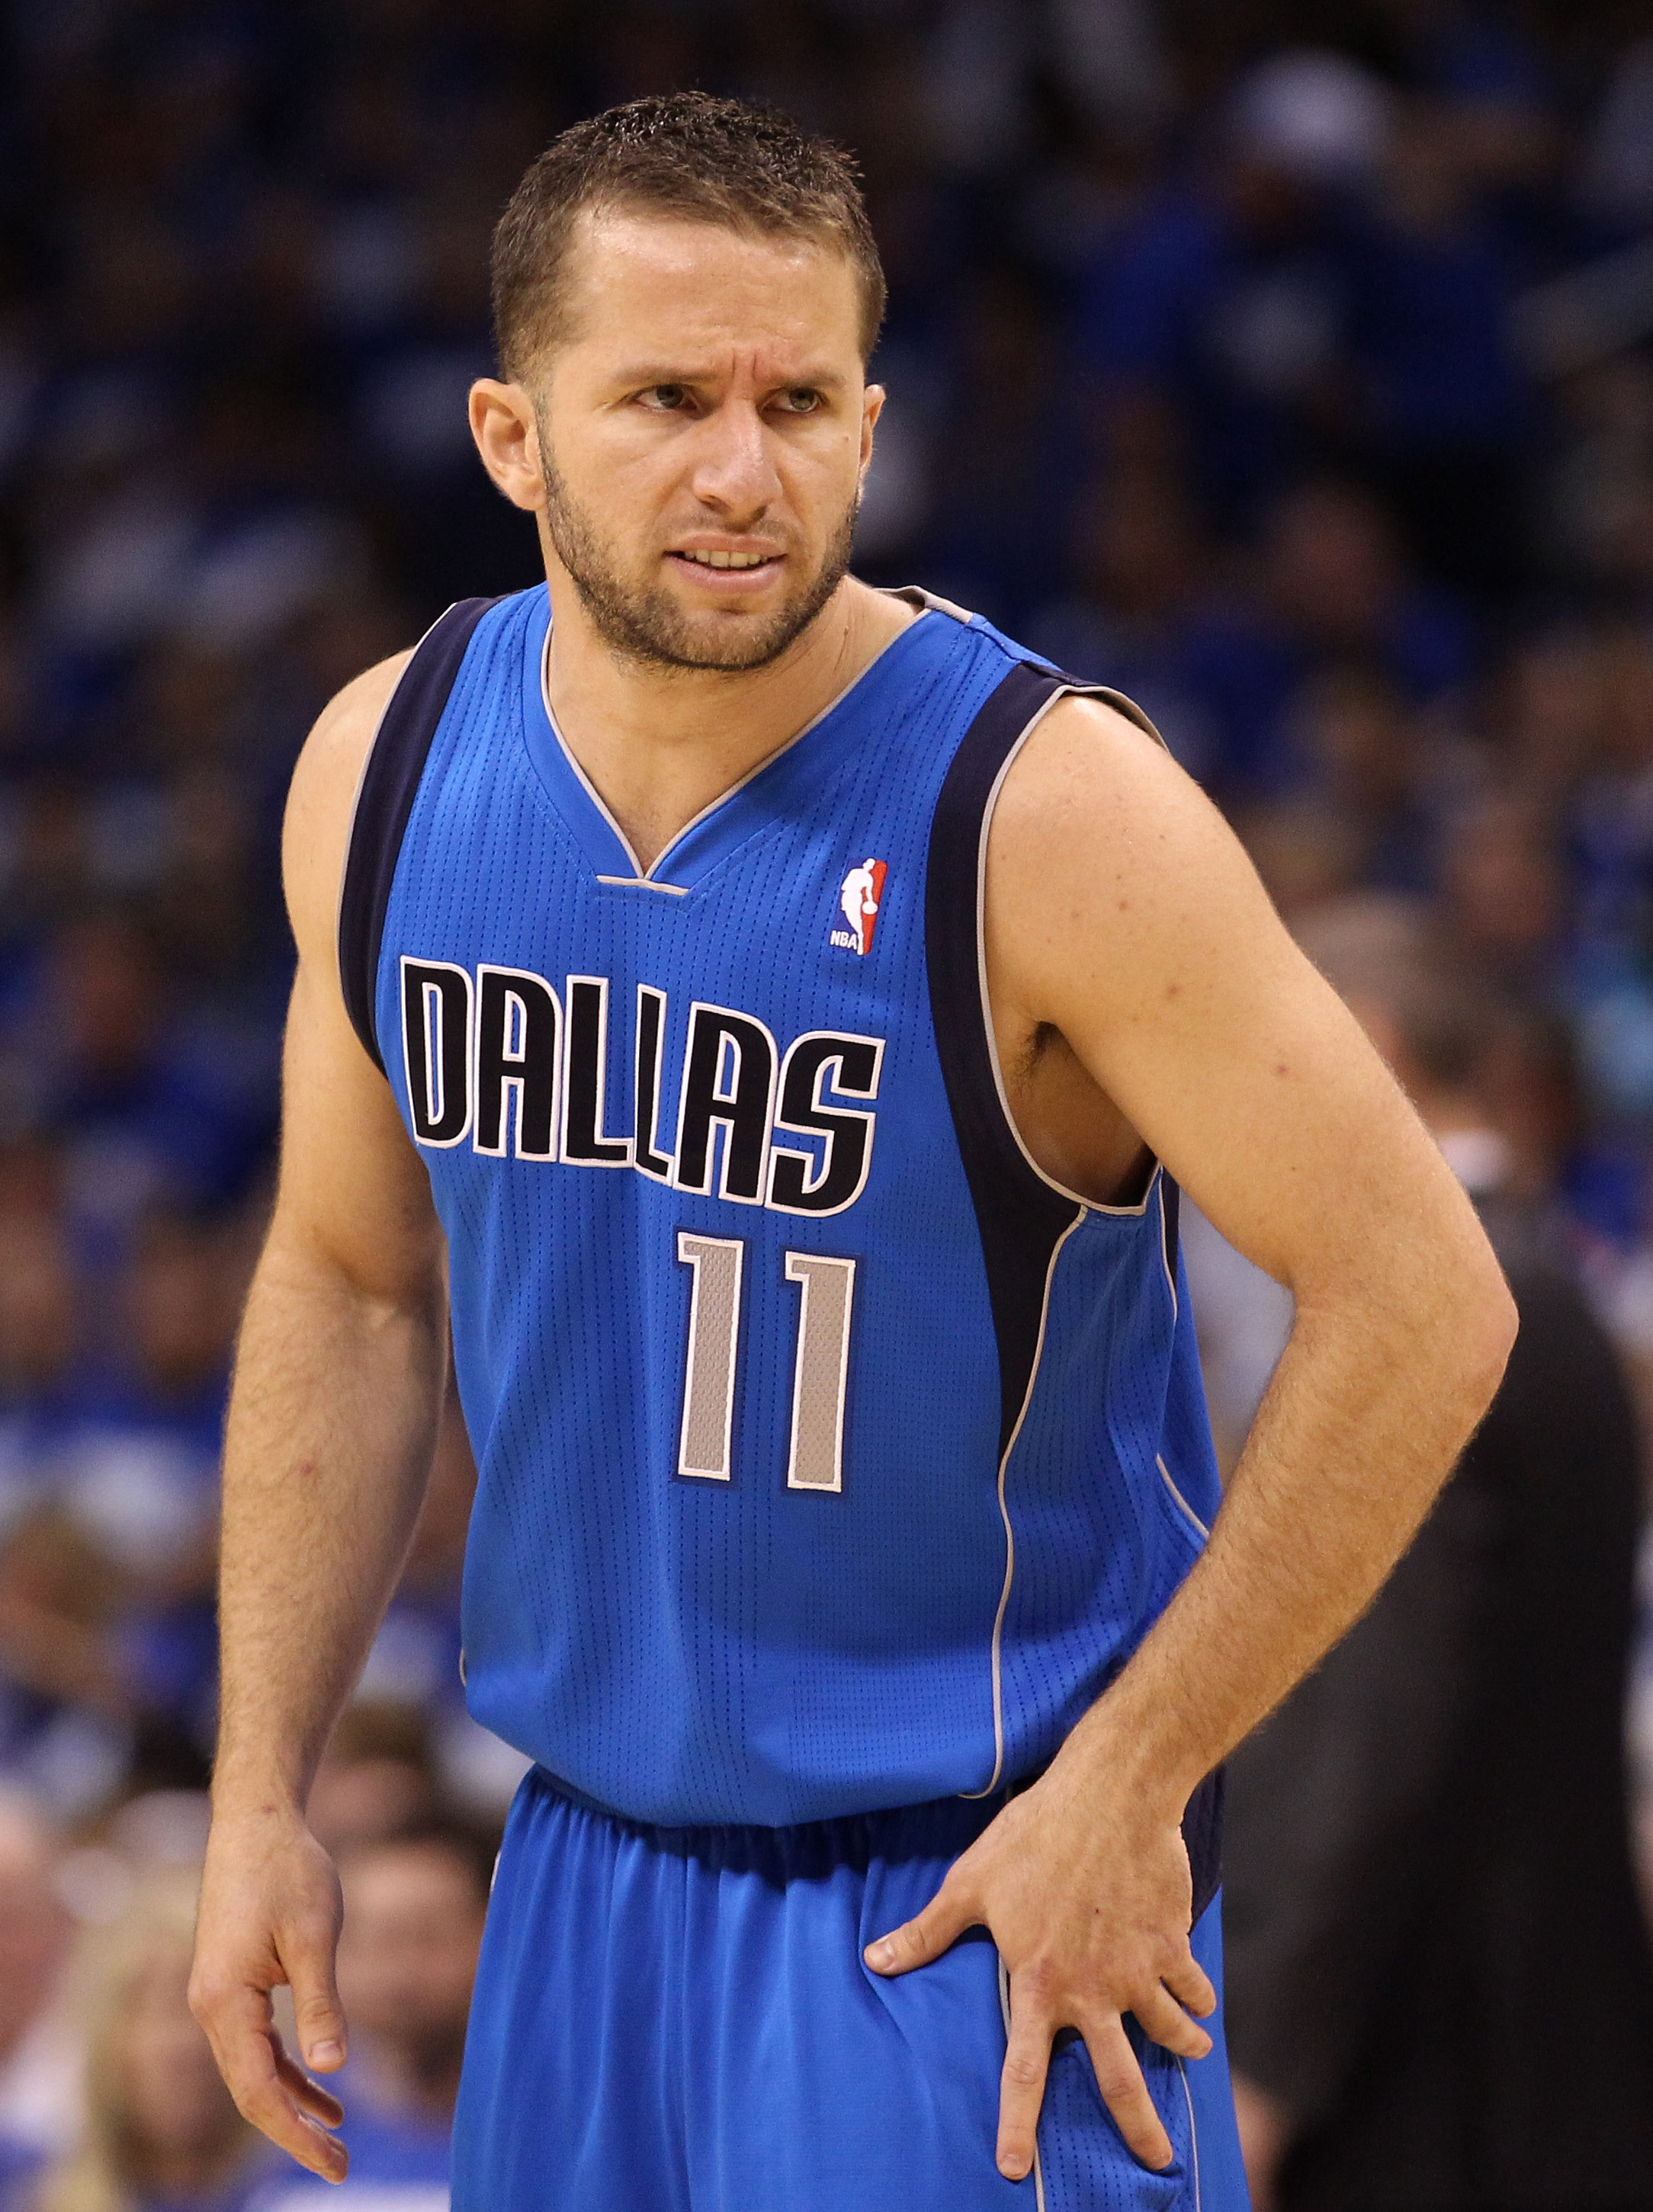 OKLAHOMA CITY, OK - MAY 21:  Jose Juan Barea #11 of the Dallas Mavericks looks on while taking on the Oklahoma City Thunder in Game Three of the Western Conference Finals during the 2011 NBA Playoffs at Oklahoma City Arena on May 21, 2011 in Oklahoma City